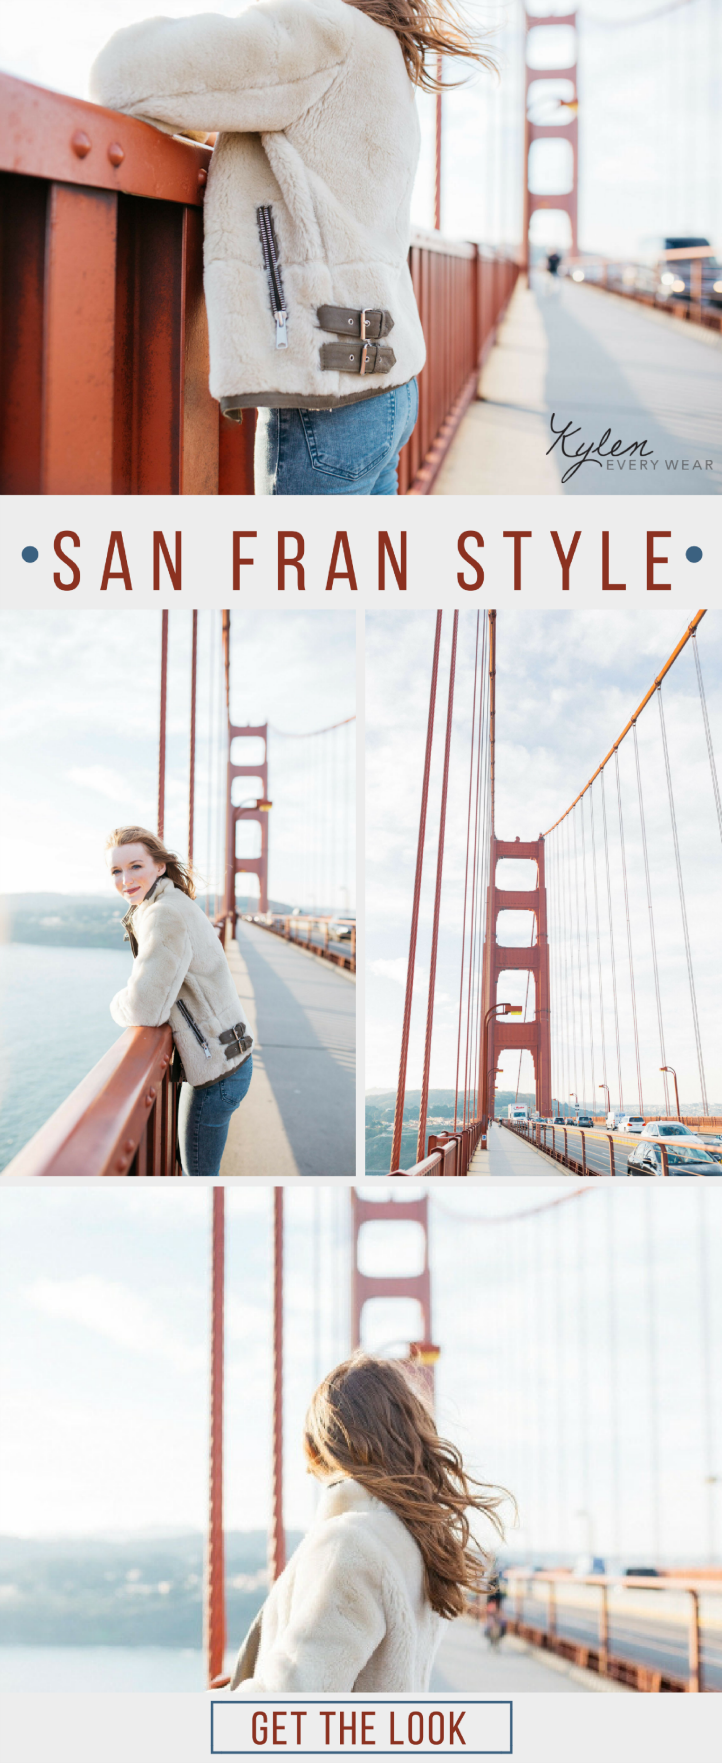 Shearling is very on trend this season. Practical and fashionable, it's the perfect choice for a little San Fran sightseeing.